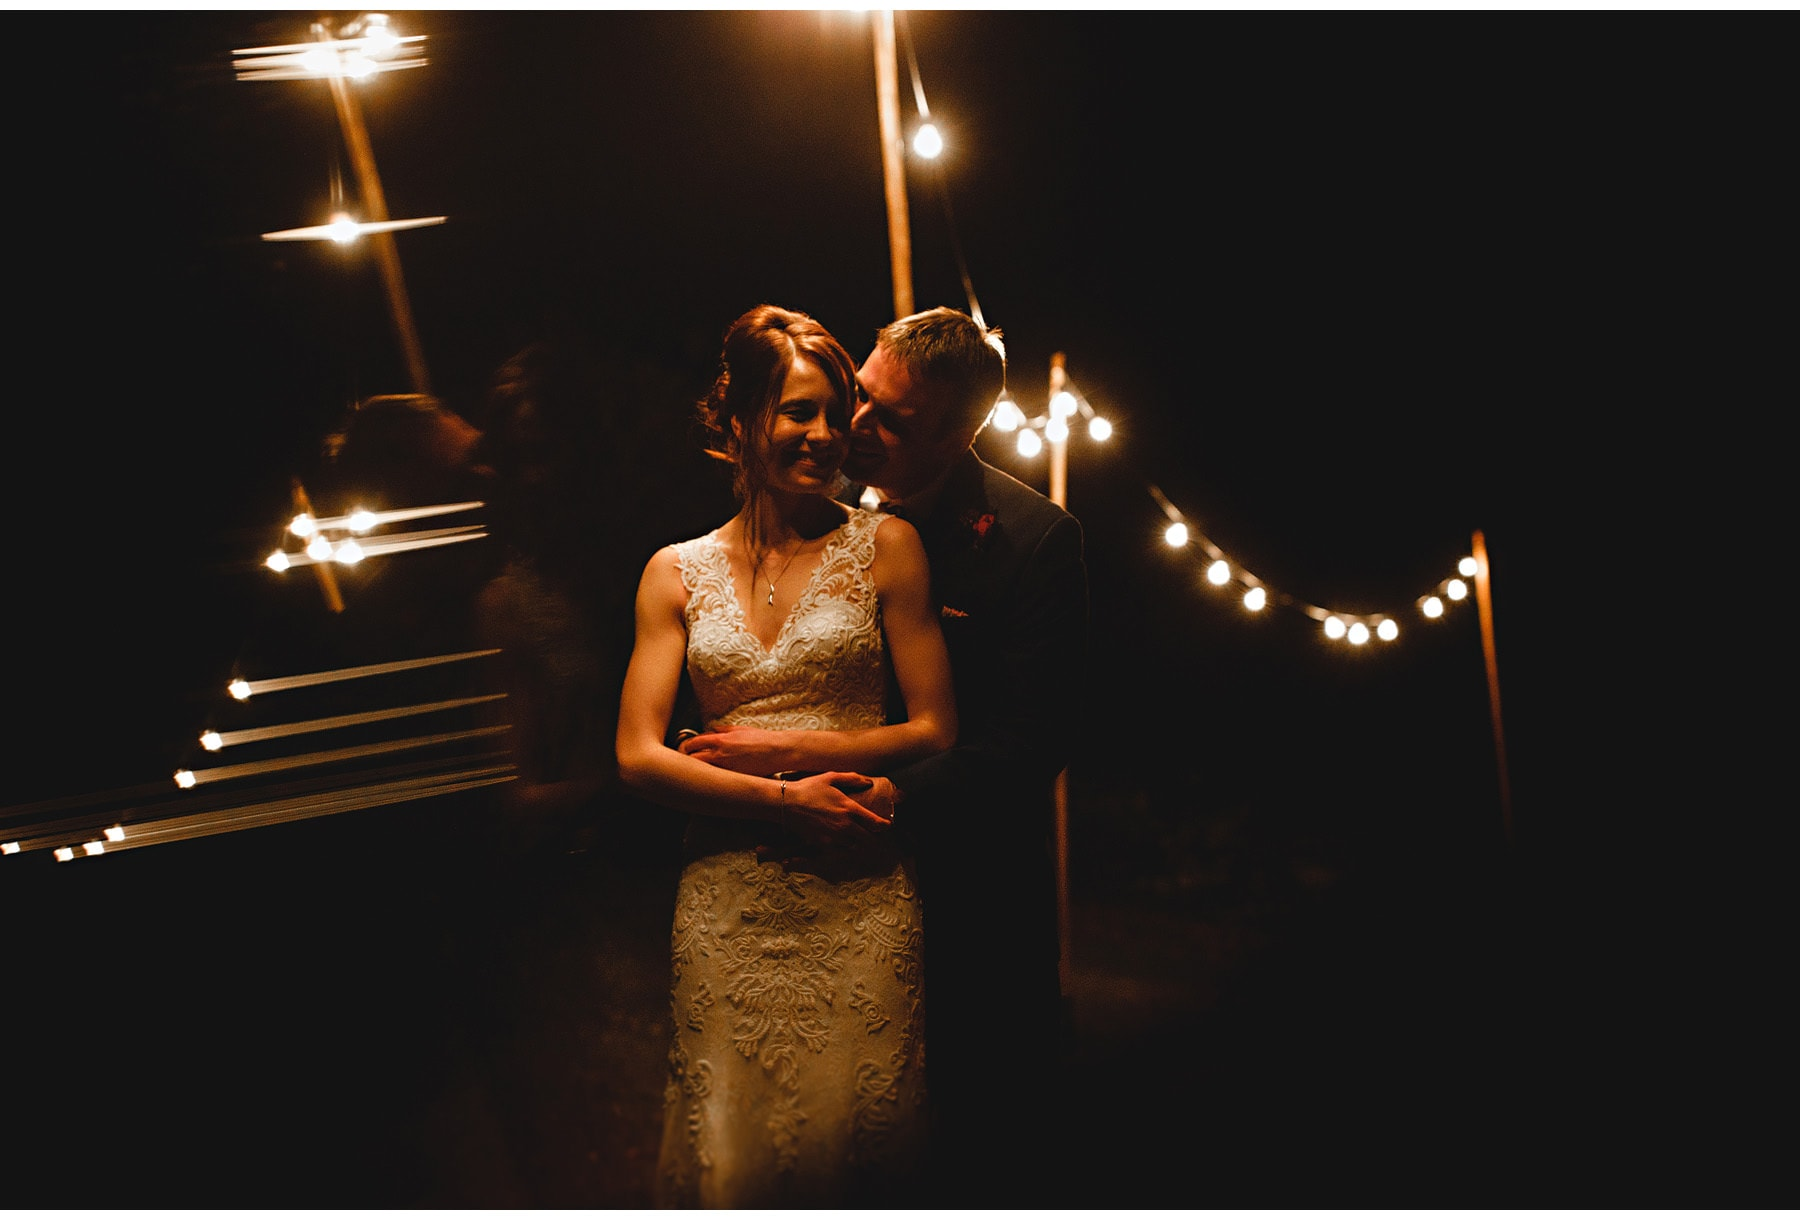 The bride & groom with festoon lights in the background